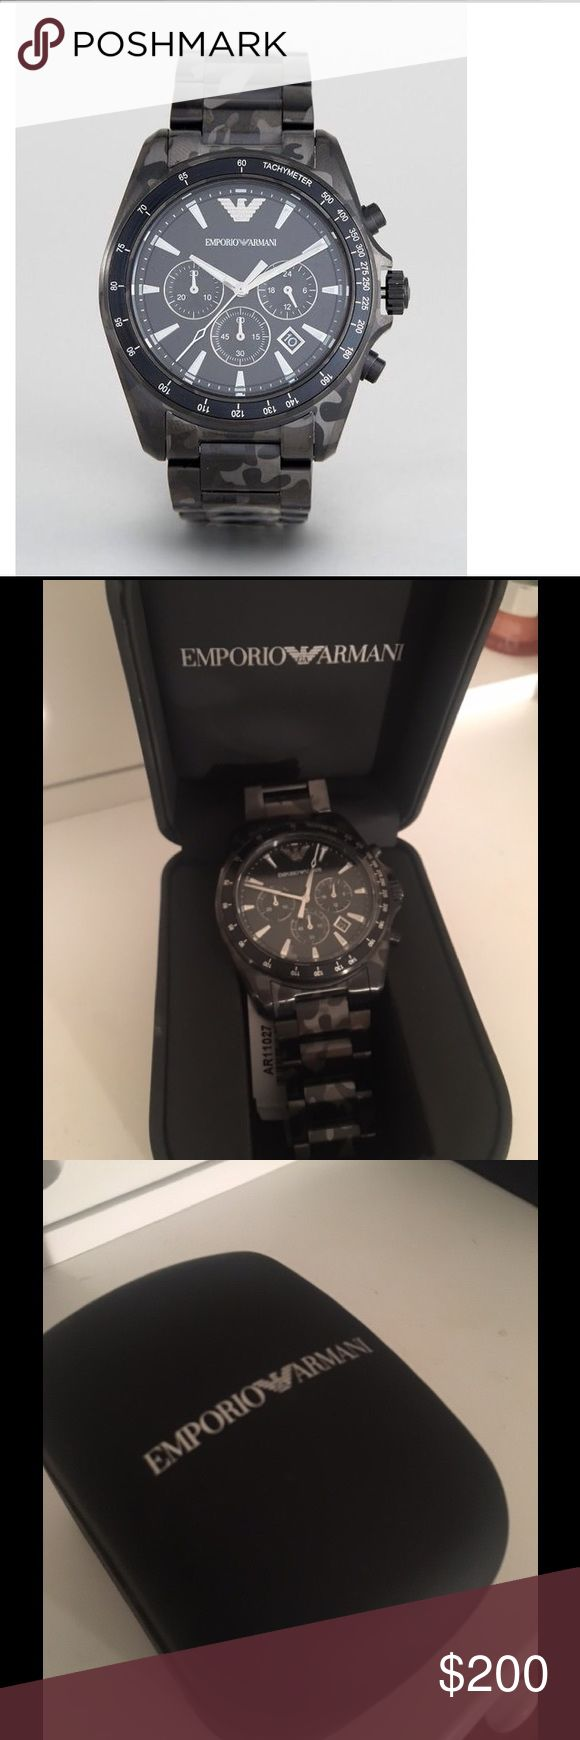 Emporio Armani watch Men's Emporio Armani watch Emporio Armani Accessories Watches